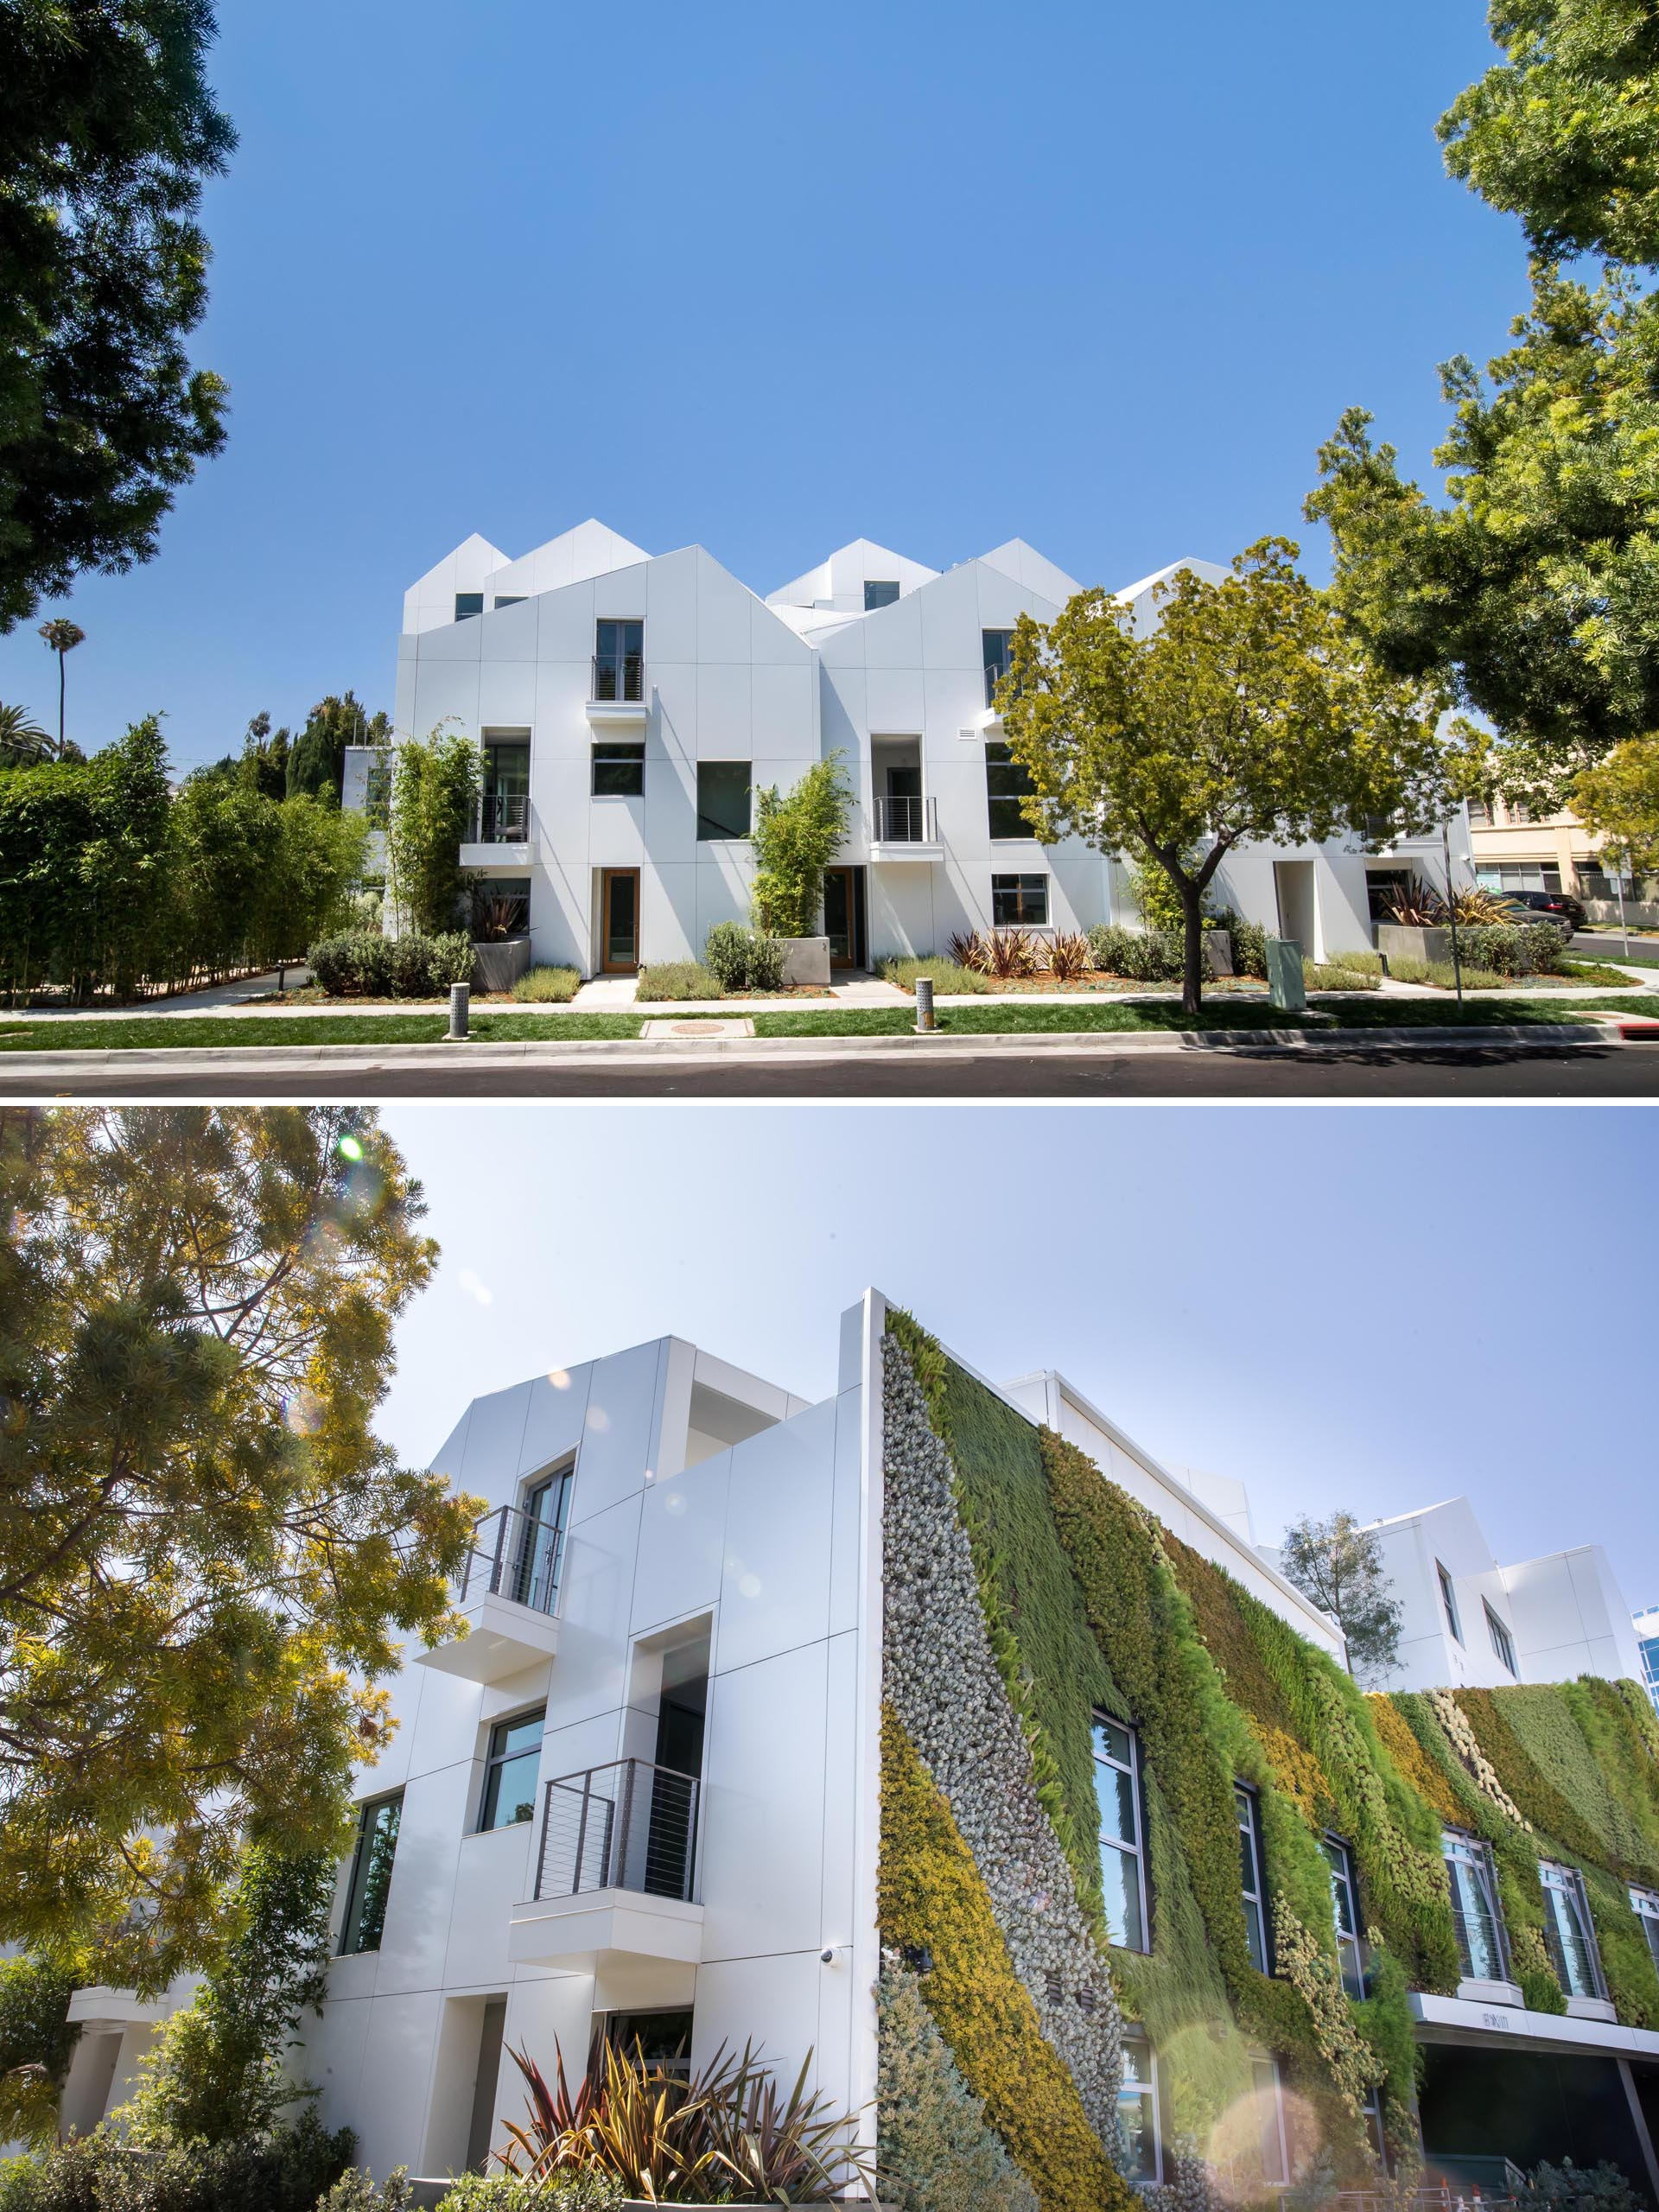 A modern residential building with a large living wall.